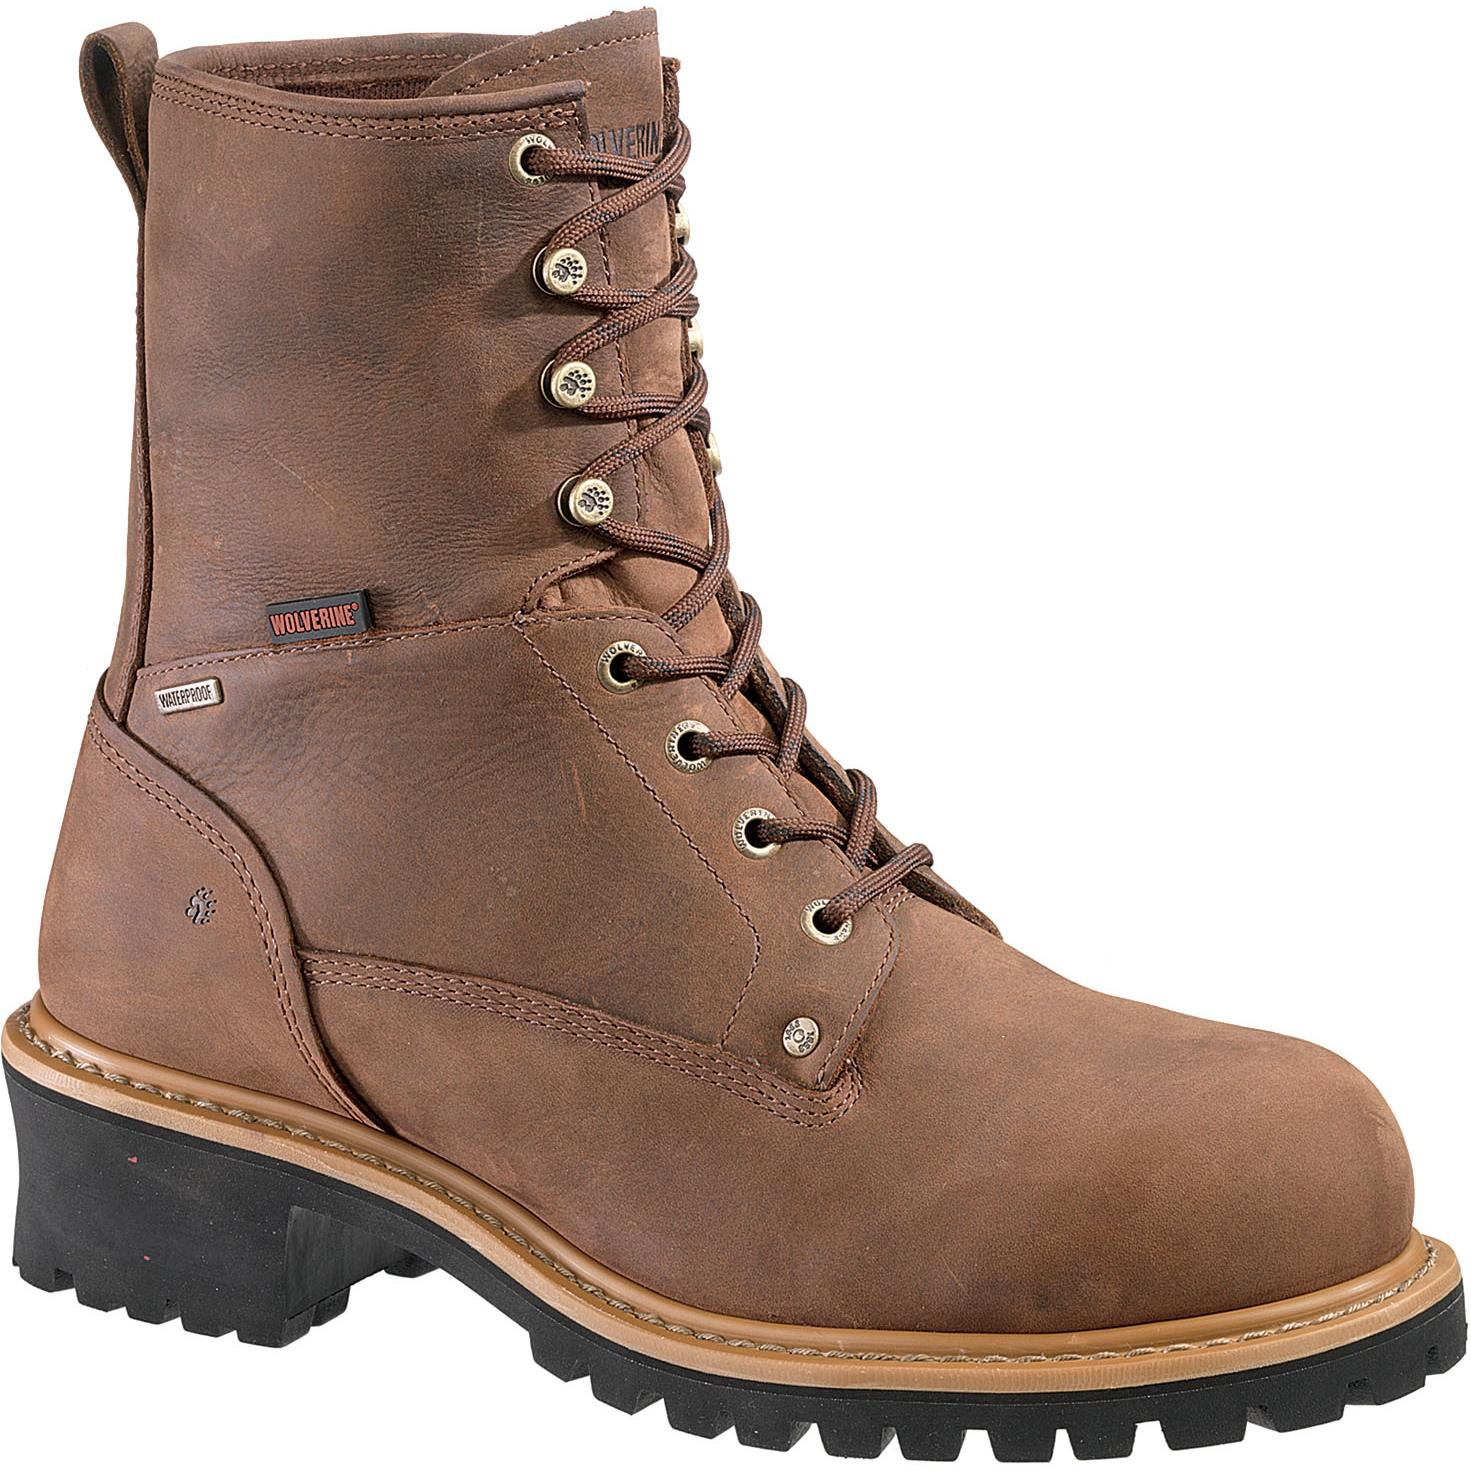 Wolverine Mens Snyder 8 Inch 400 Gram Thinsulate Insulated Waterproof EH Logger Steel Toe Work Boots - Brown - Size 7 - Medium